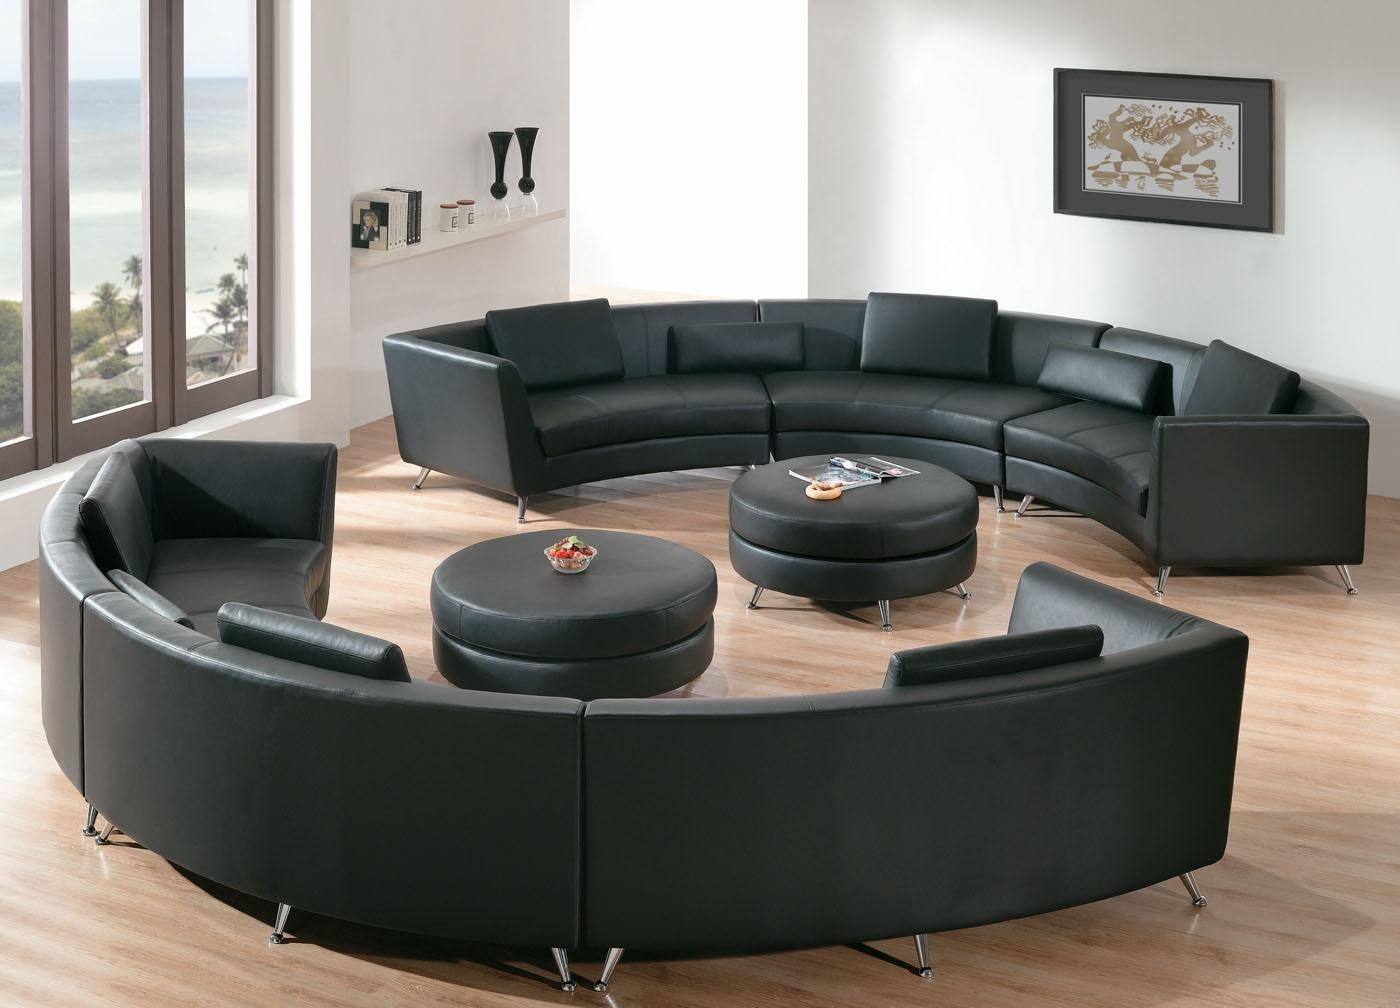 Round Sectional Sofa For Unique Seating Alternative – Traba Homes Inside Circle Sofa Chairs (View 15 of 20)